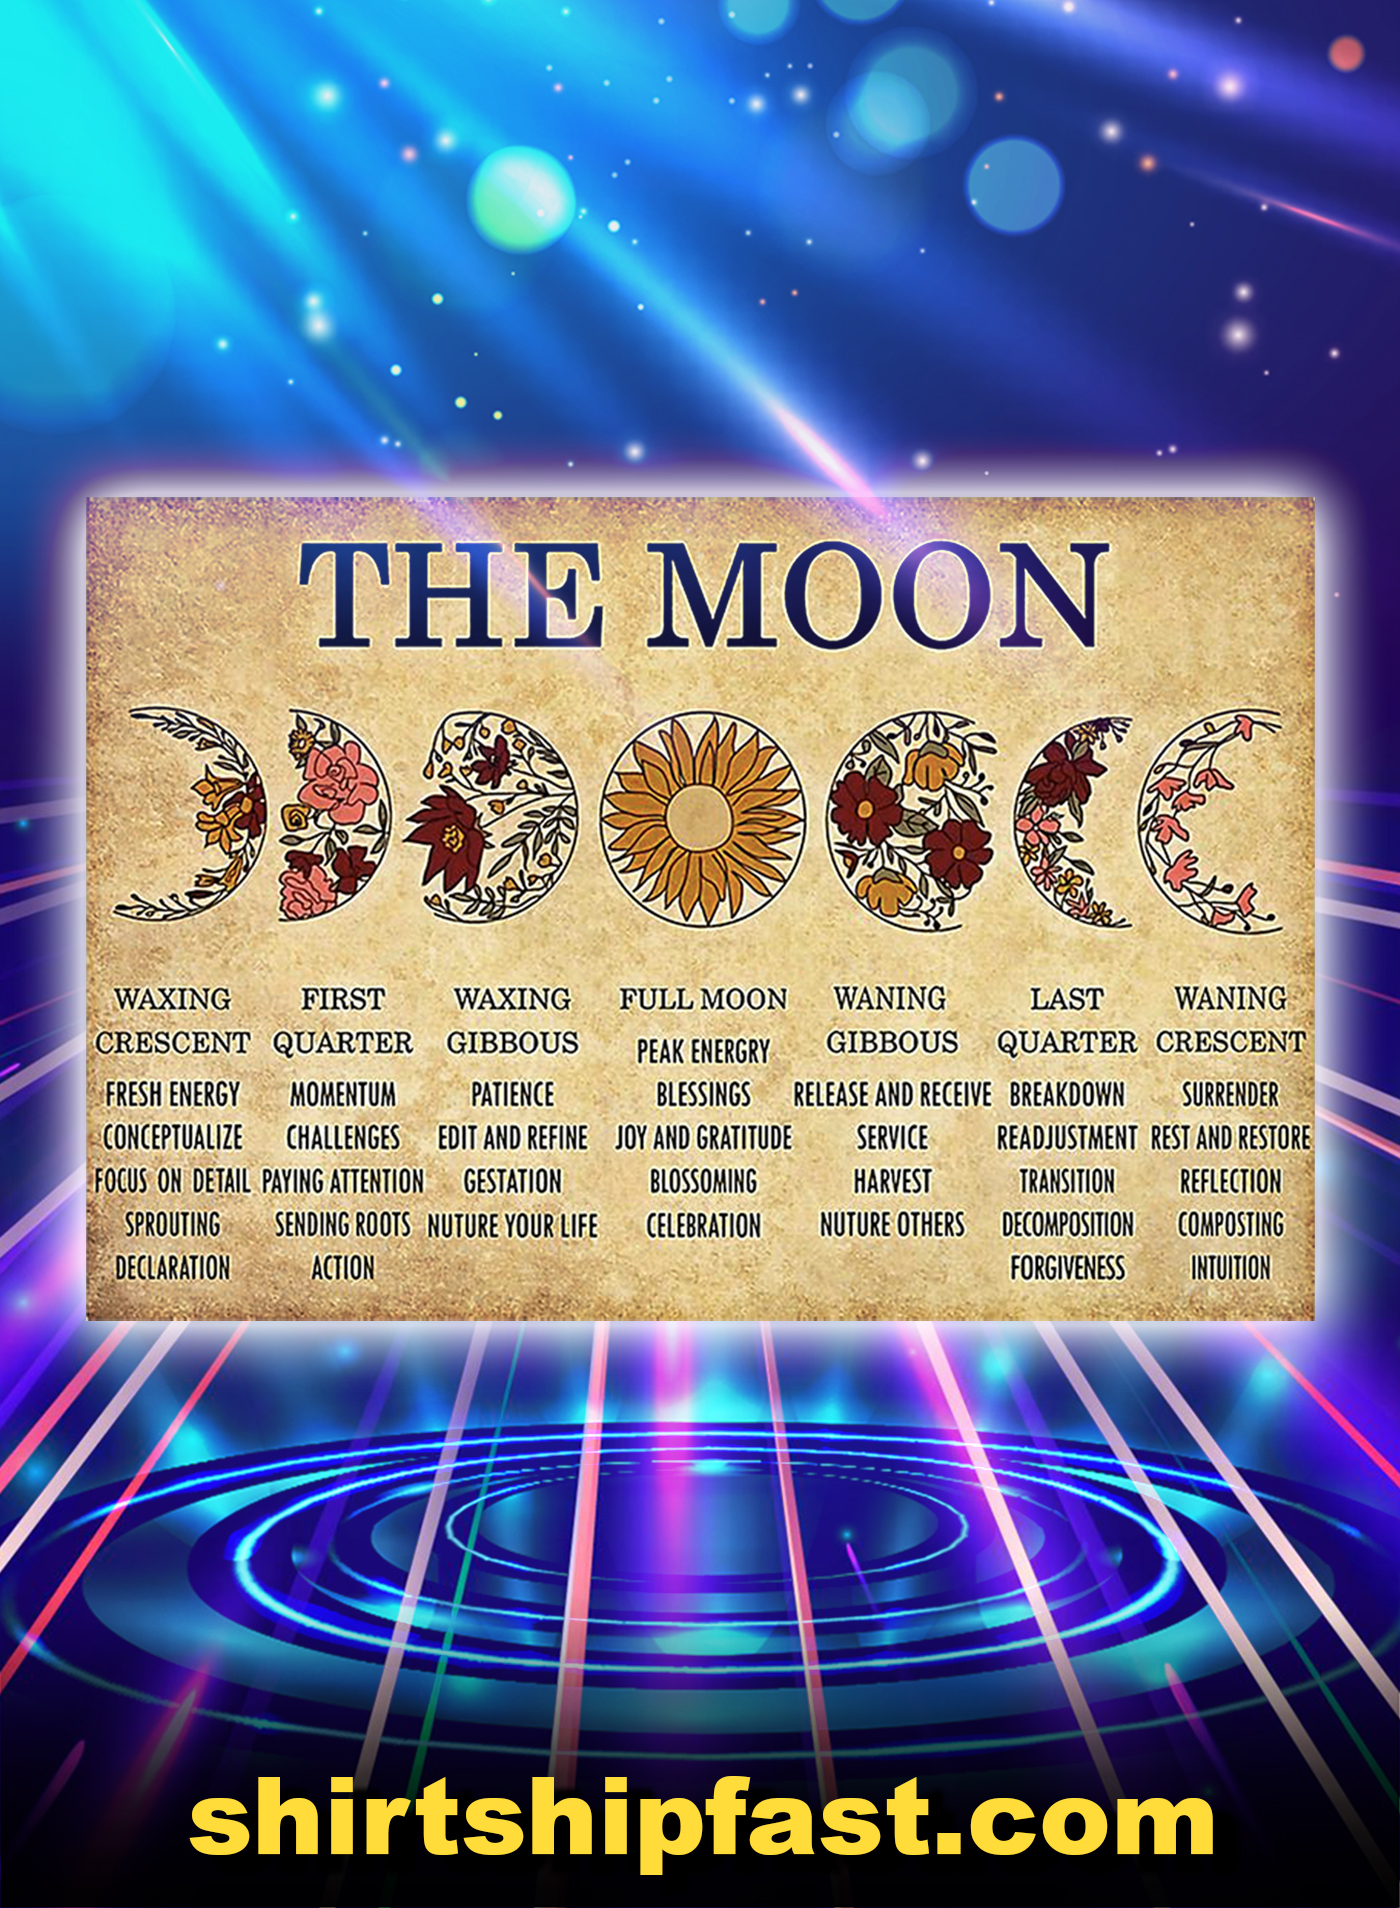 The moon waxing crescent first quarter poster - A1